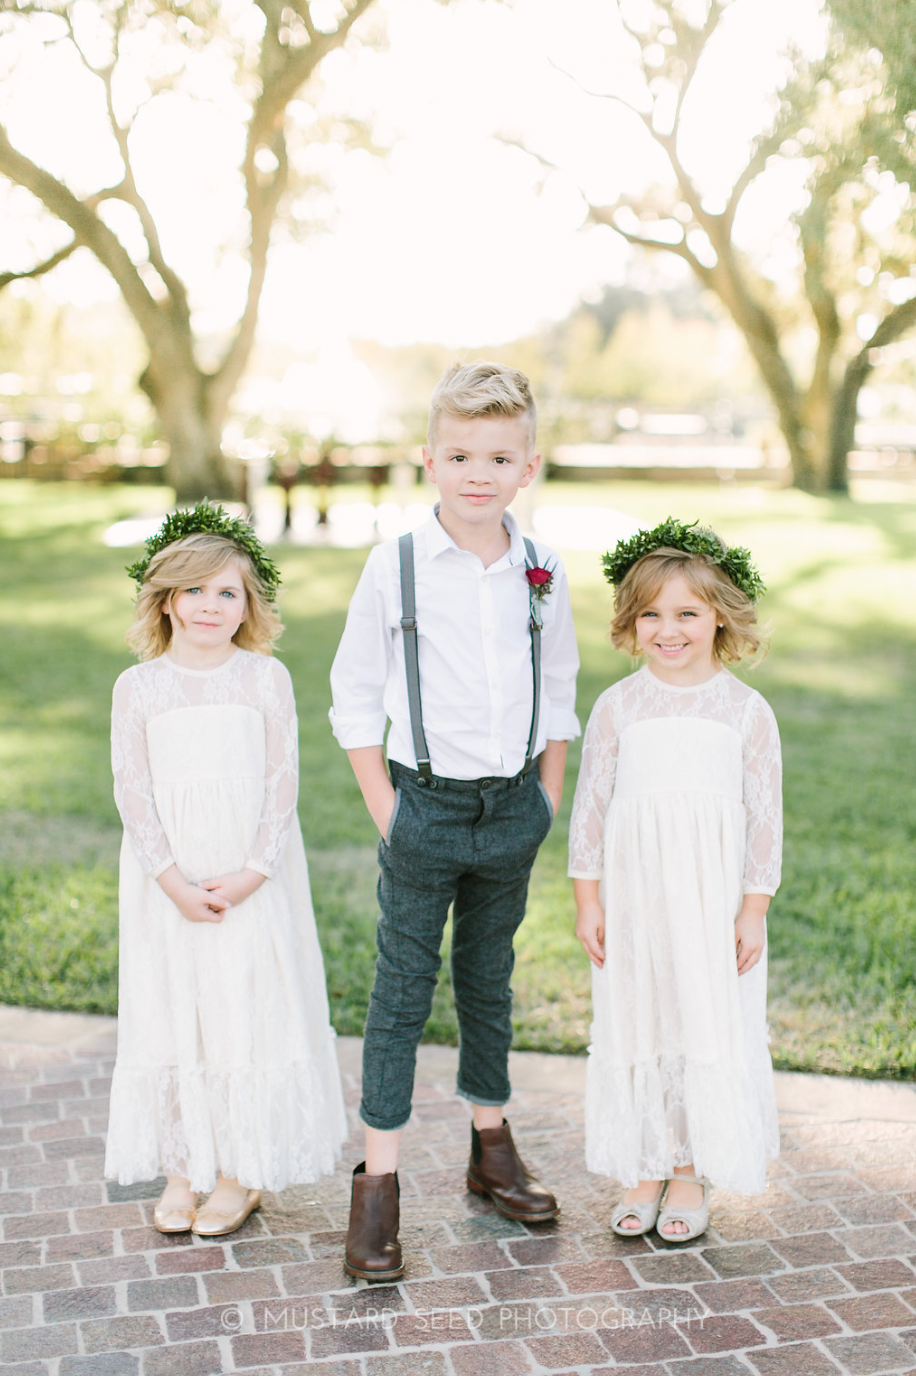 Flower Girls with flower crowns and Ring bearer in suspenders